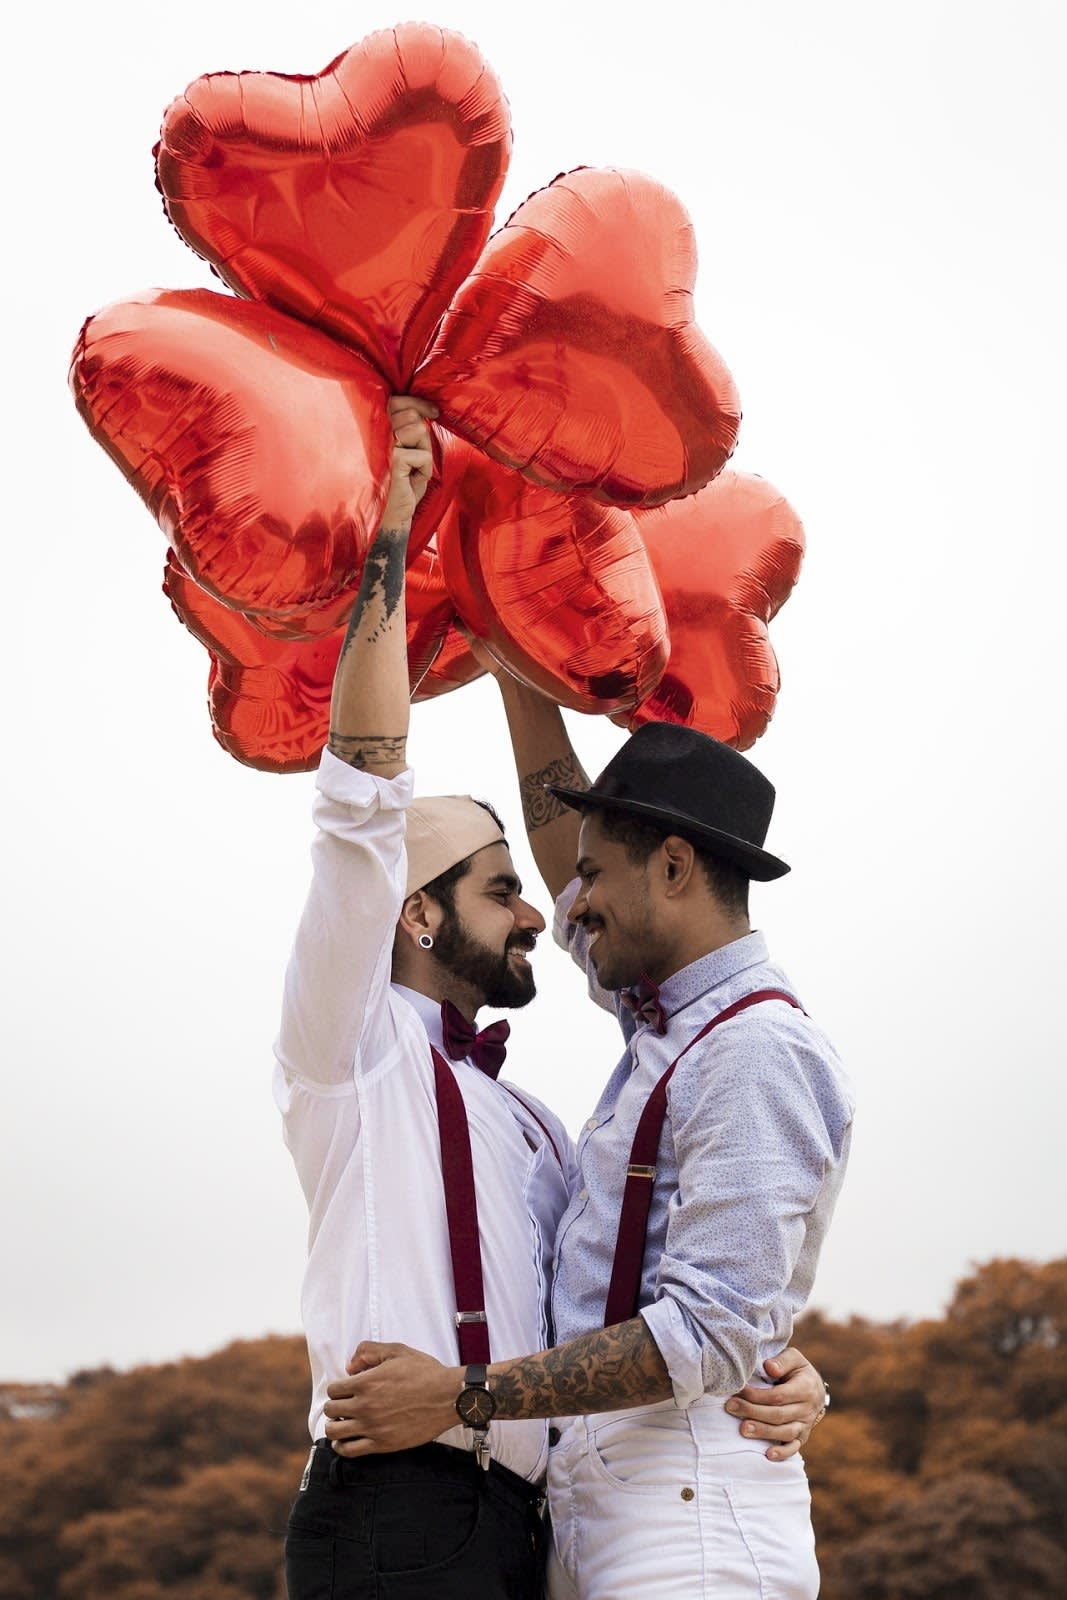 A photo of an LGBTQ couple looking lovingly into each others eyes, while holding heart balloons.